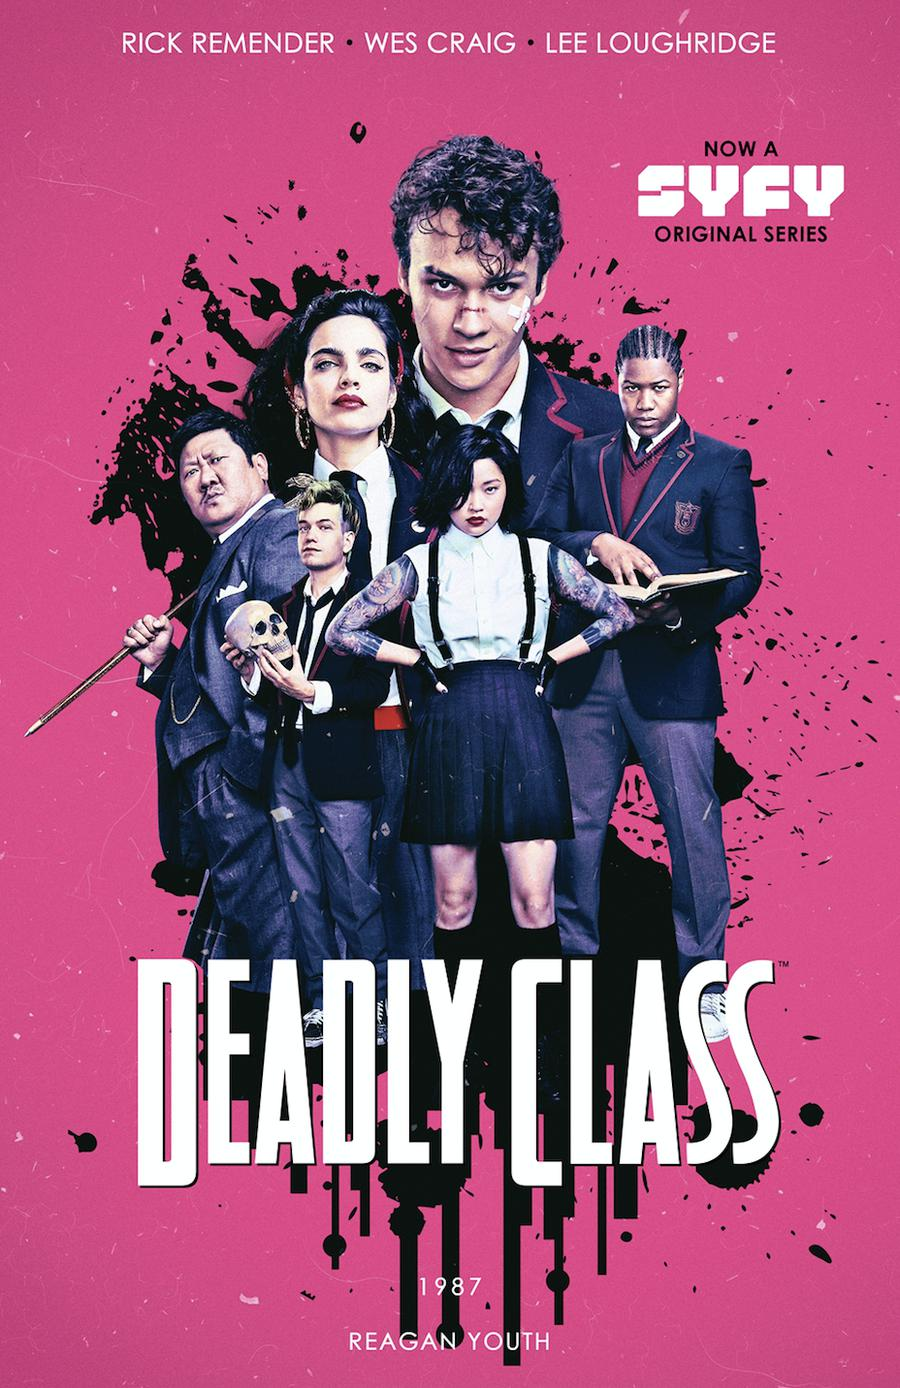 Deadly Class Vol 1 Reagan Youth TP Media Tie-In Edition